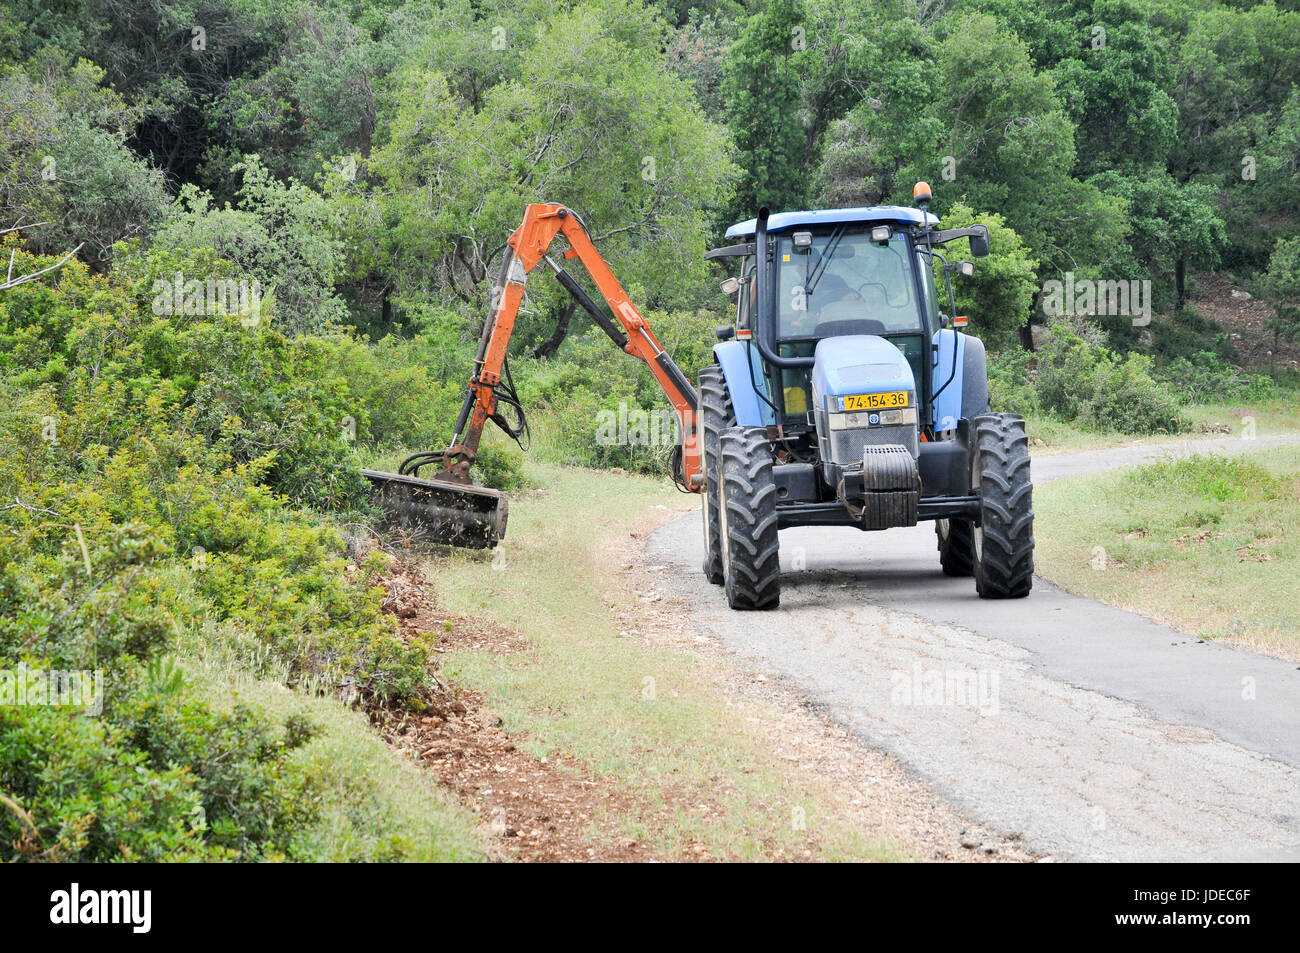 Forester clears weeds from a fire path in a orest. Photographed in Israel - Stock Image